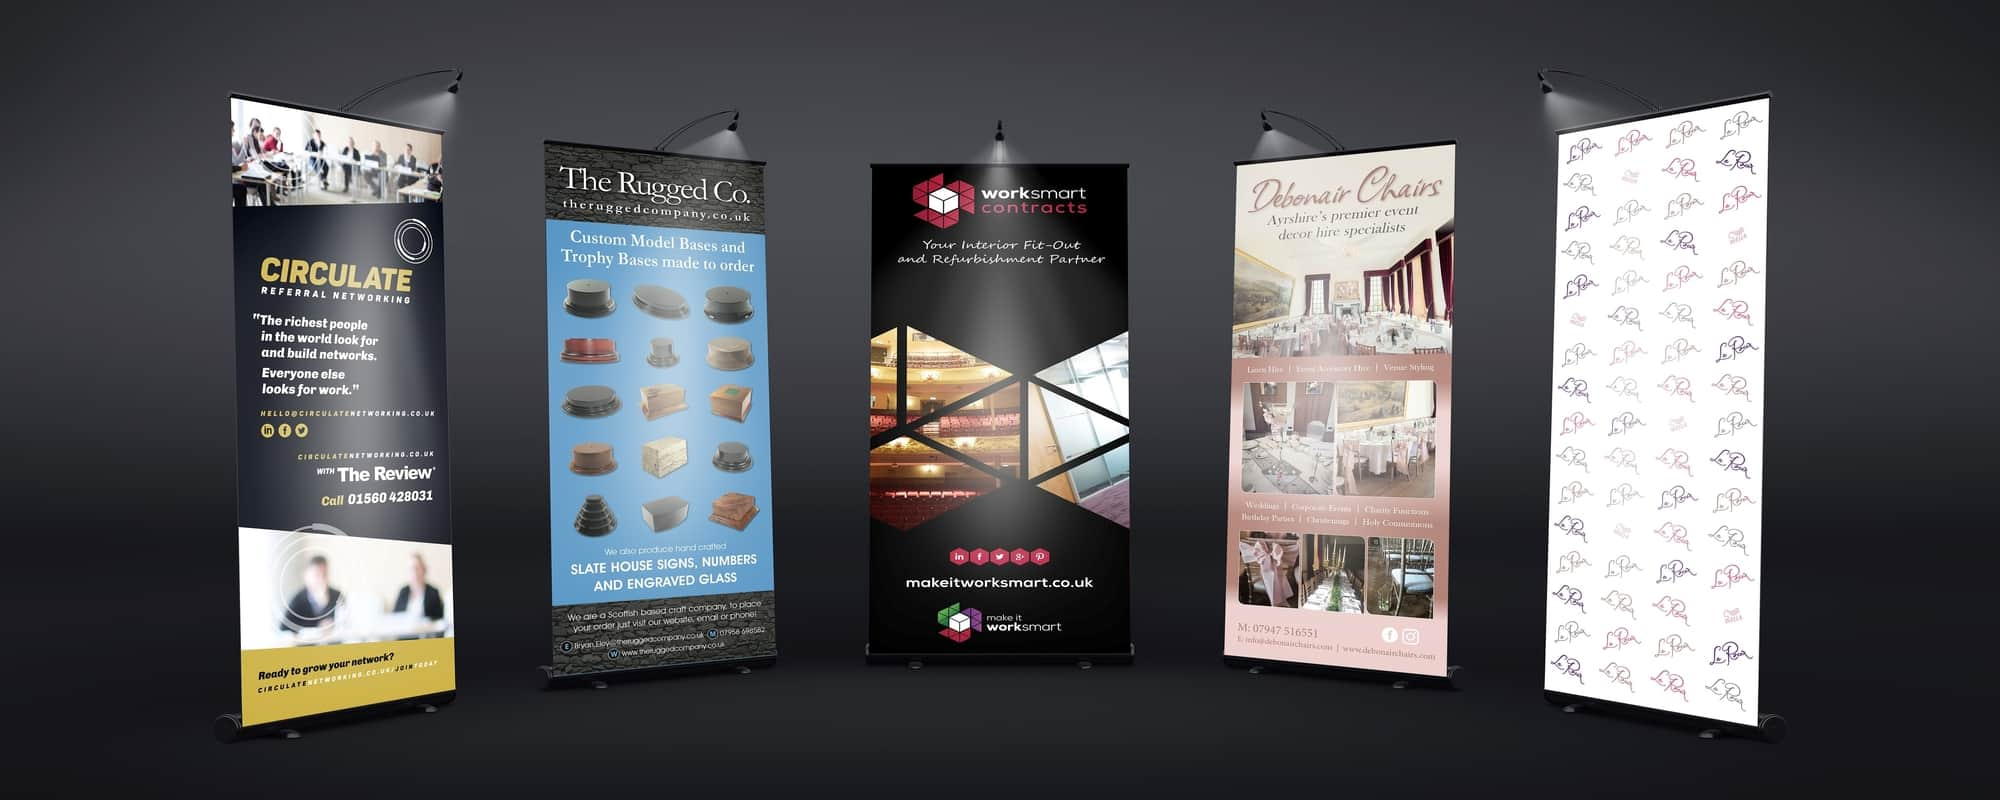 exhibition-banner-stands-uk